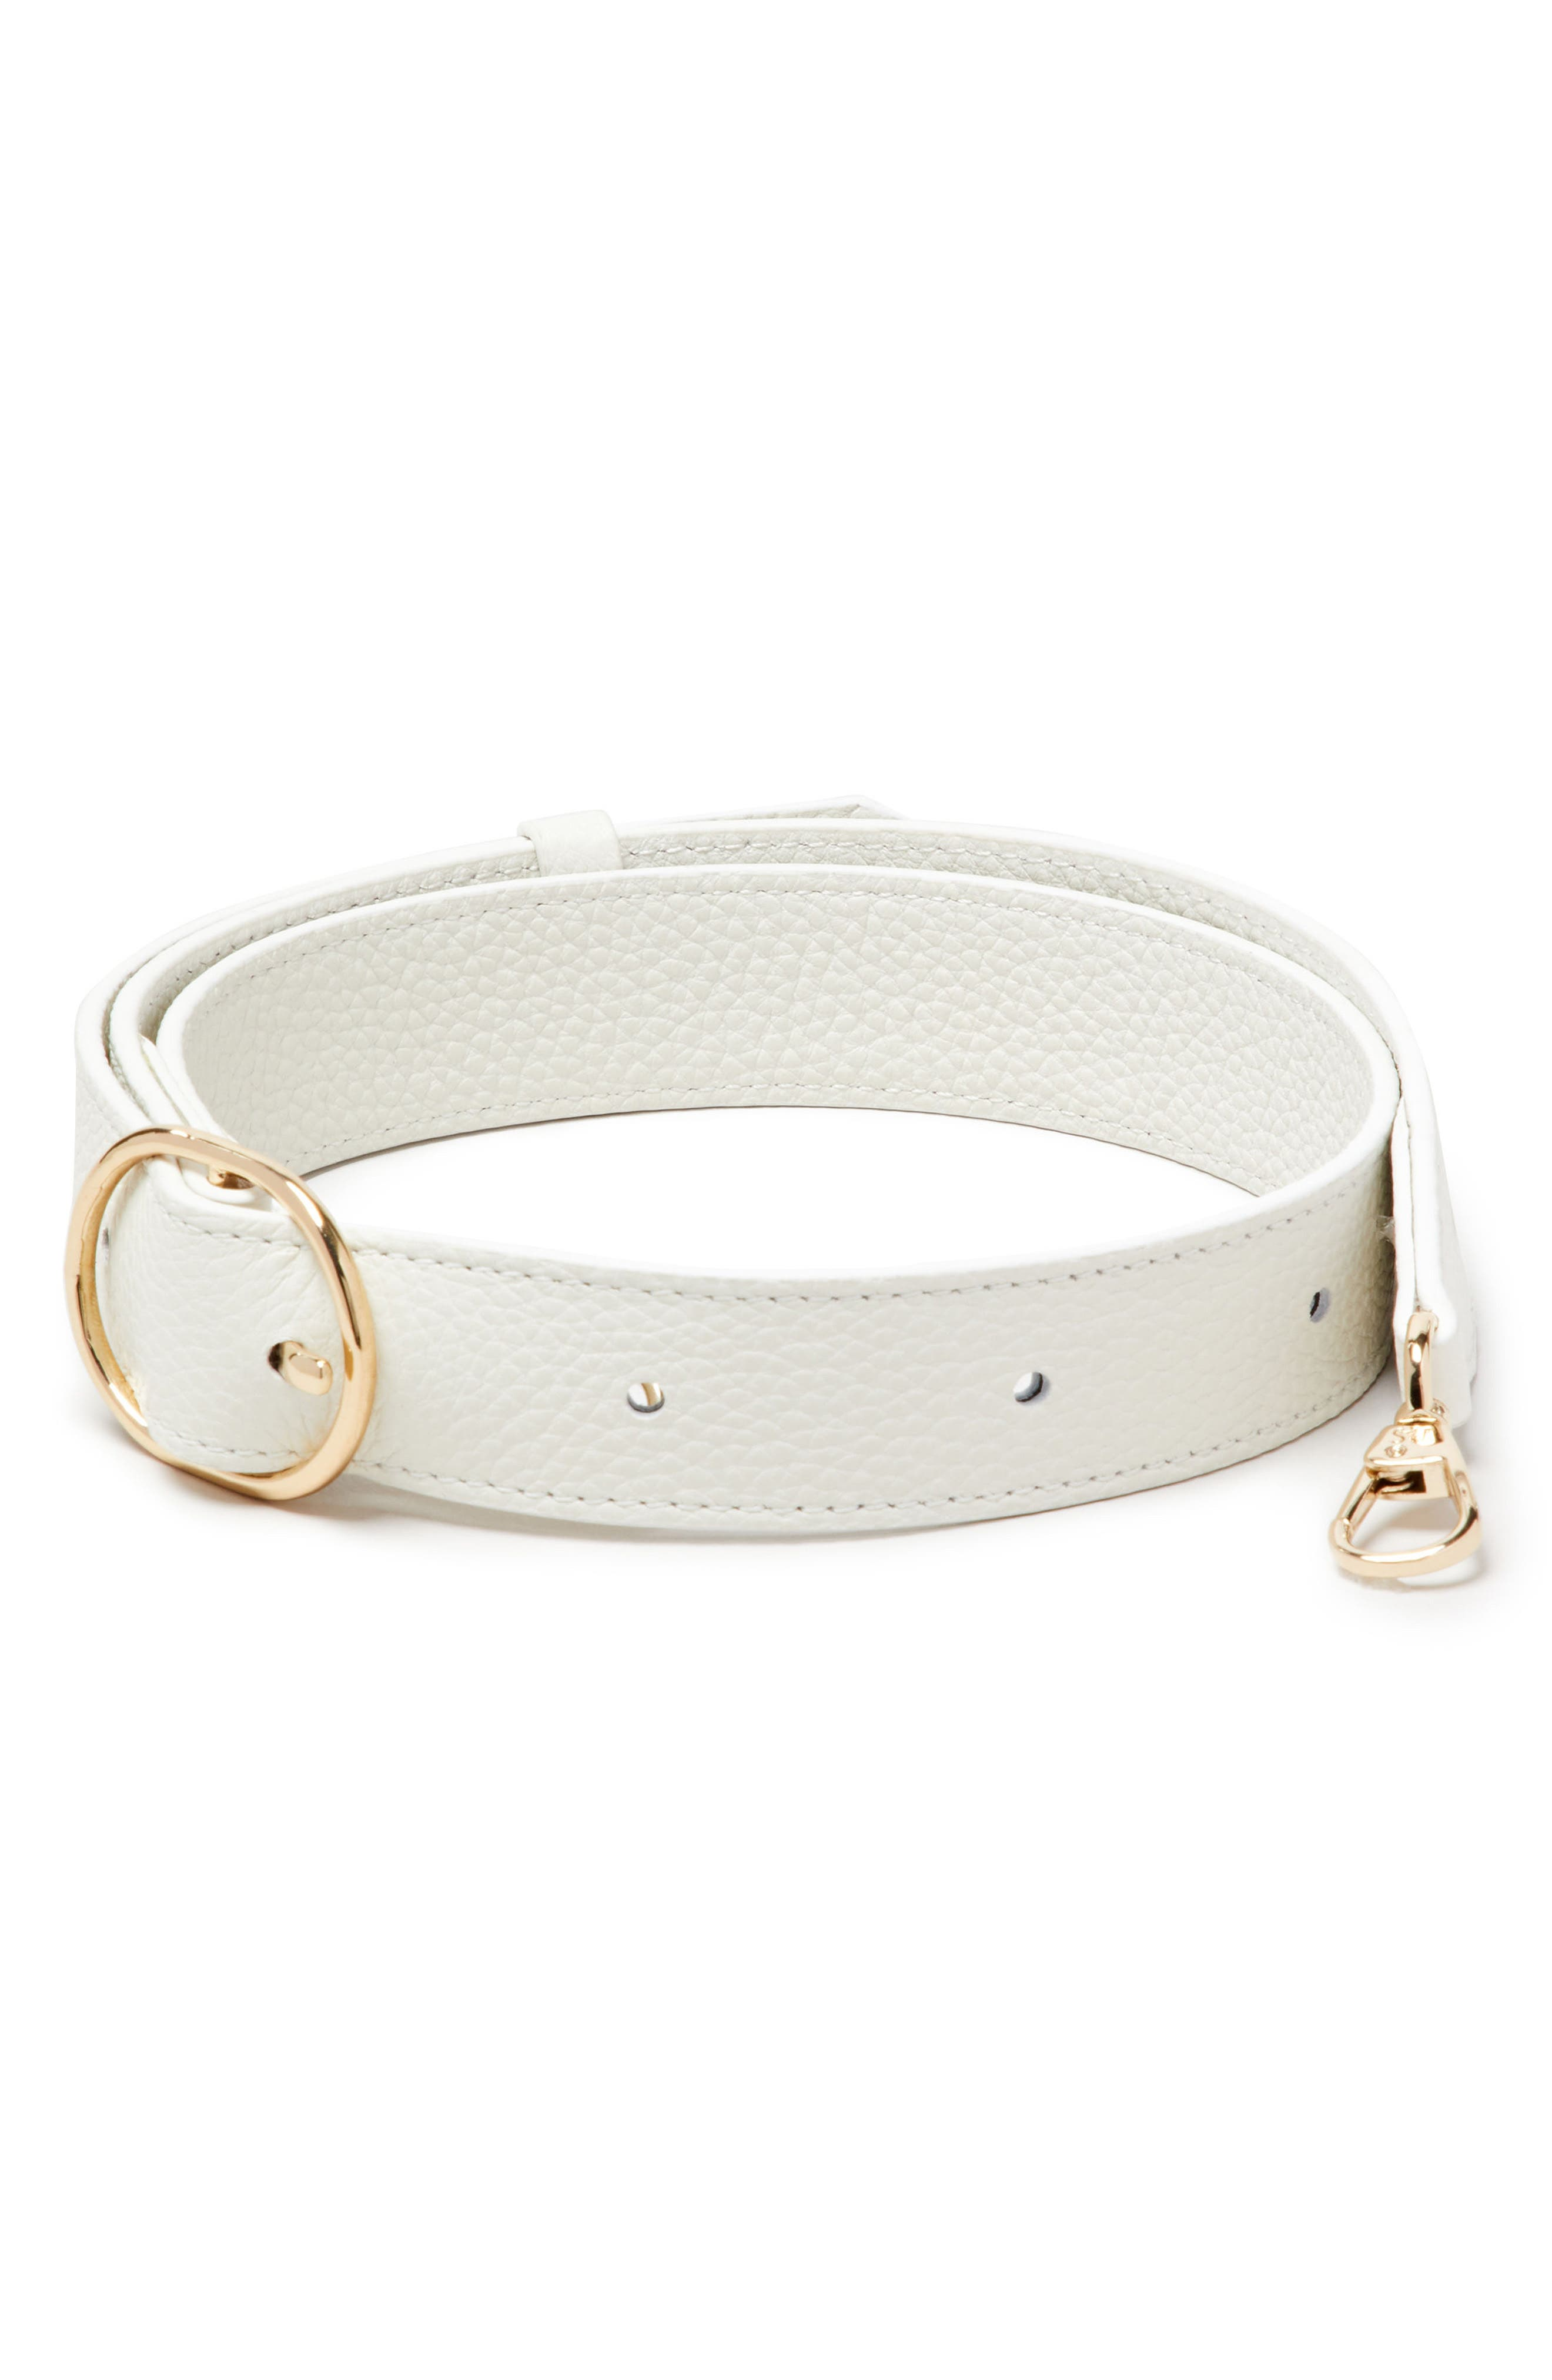 Leather Wide Fanny Strap,                         Main,                         color, Lily